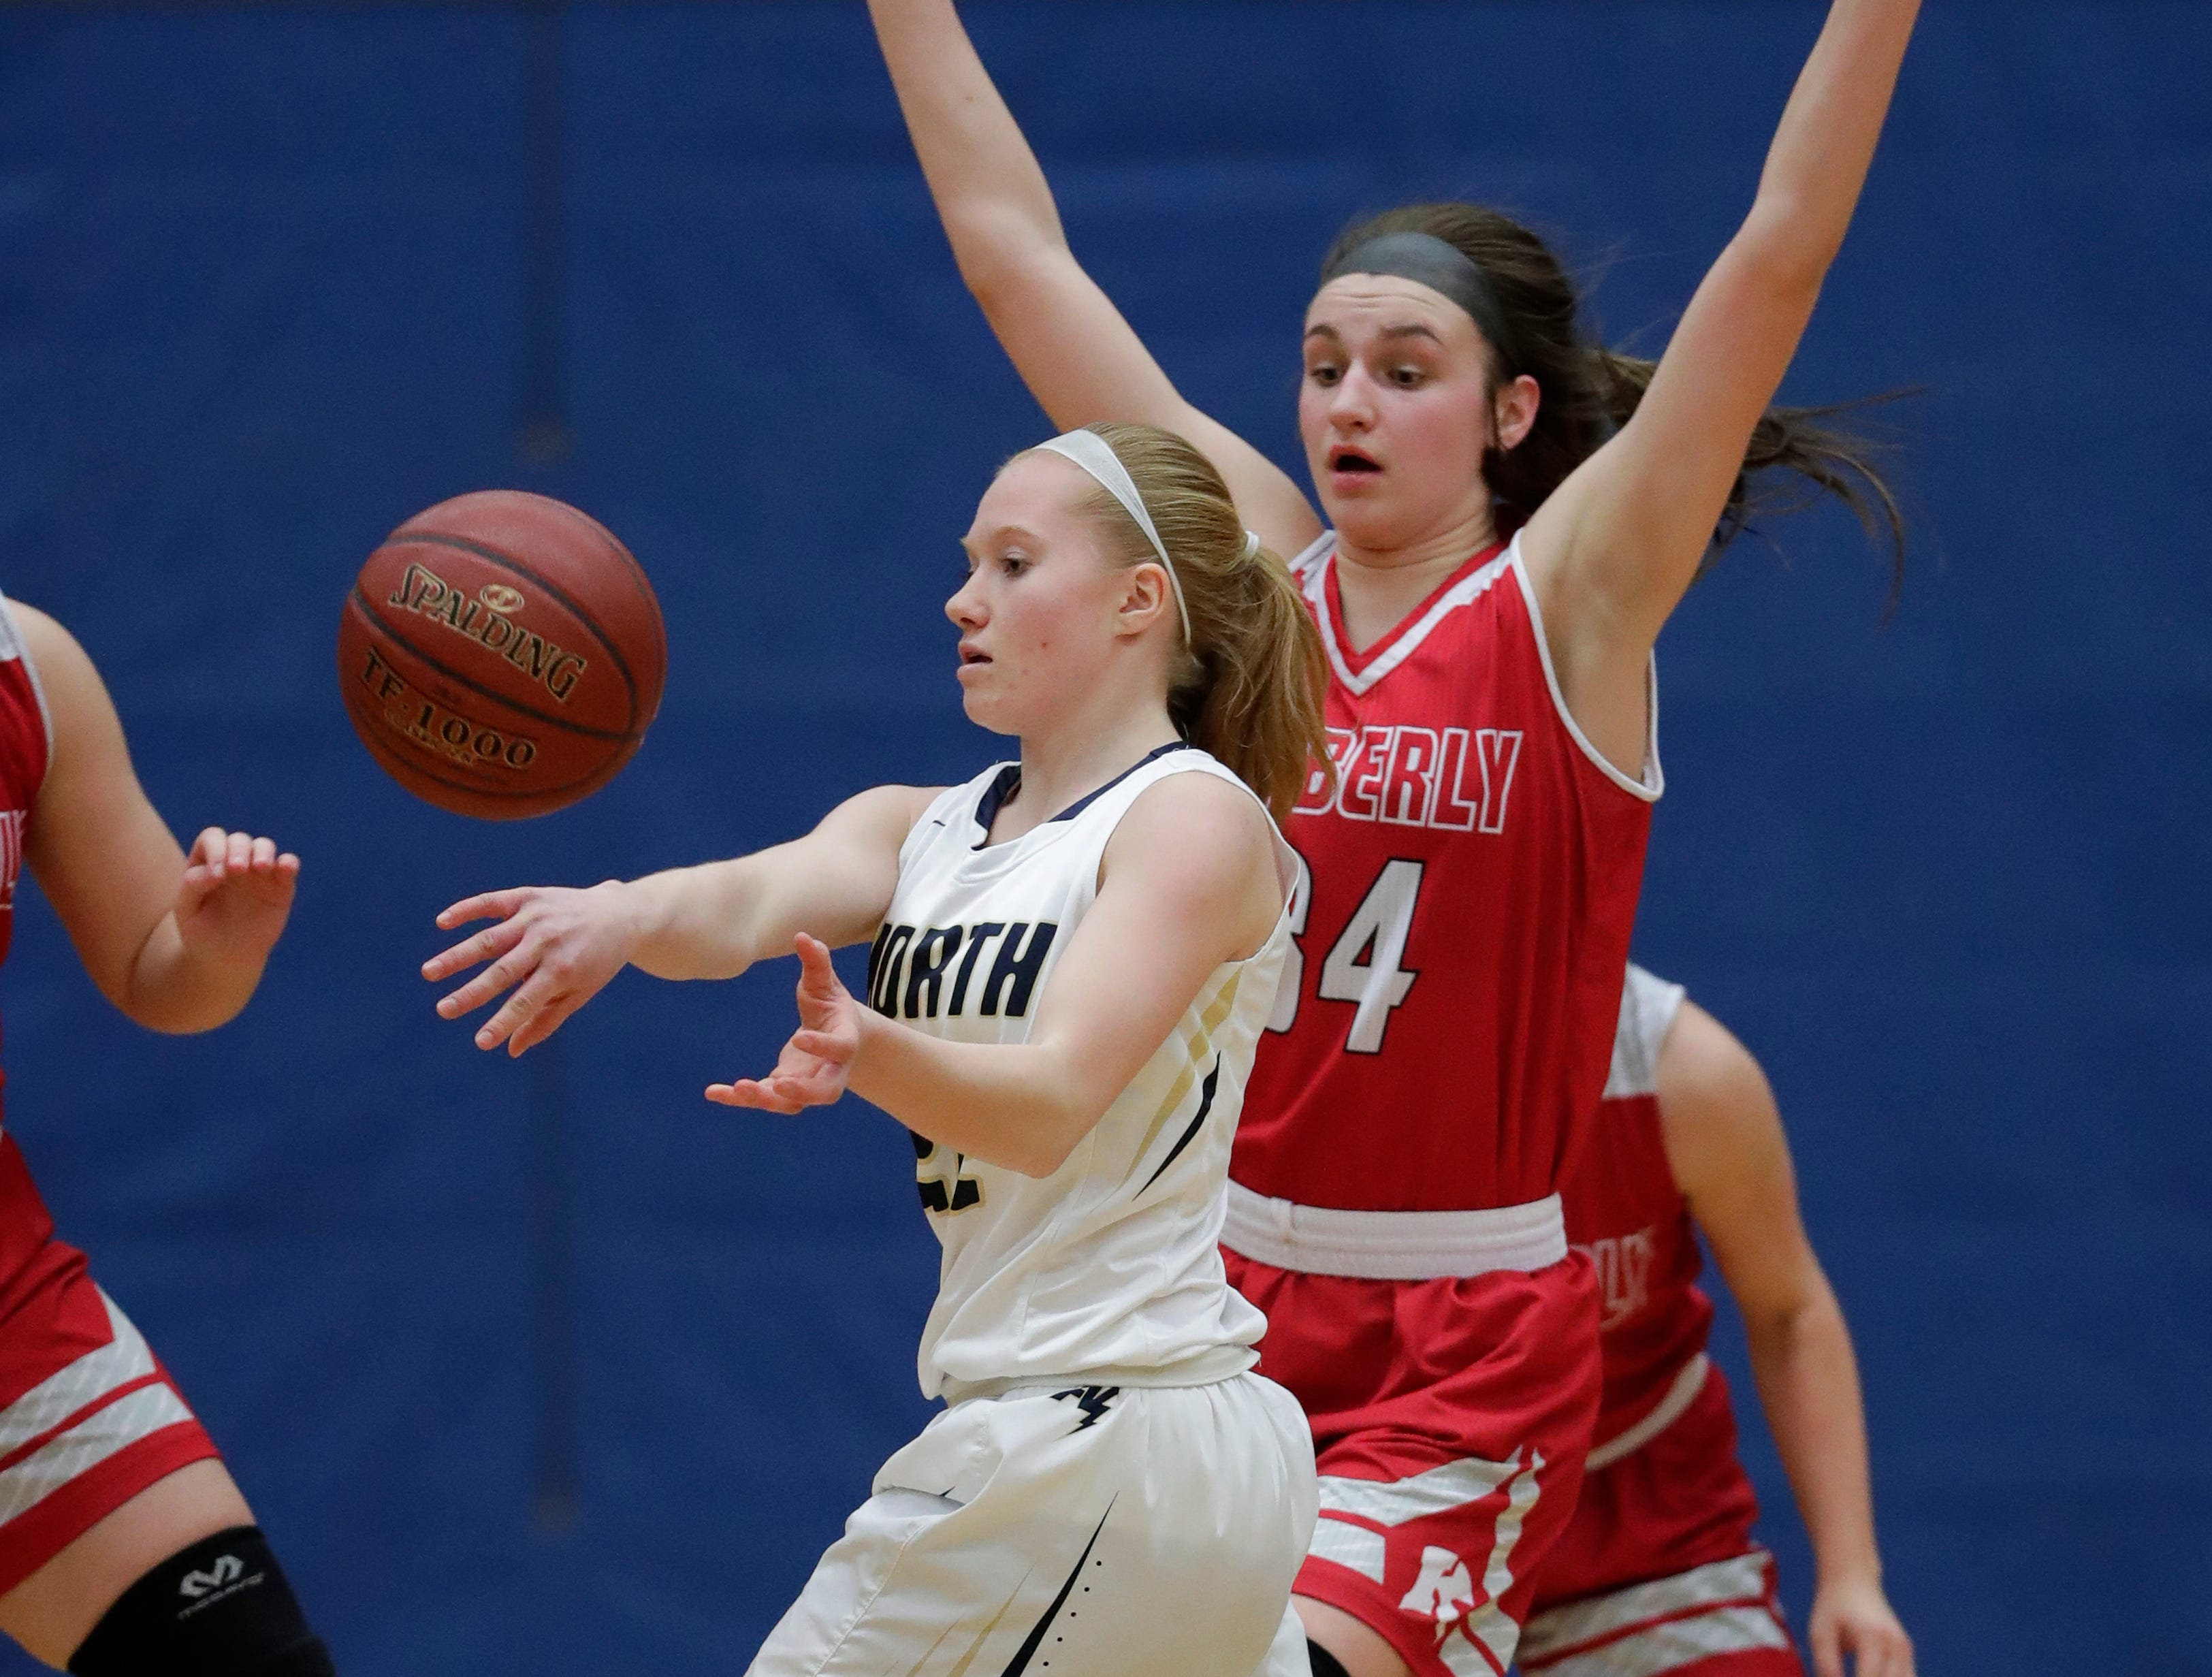 Appleton North High School's Kayla Schroeder (22) pass the ball against Kimberly High School's Maddy Schreiber (34) during their girls basketball game Tuesday, January 8, 2019, in Appleton, Wis. Dan Powers/USA TODAY NETWORK-Wisconsin